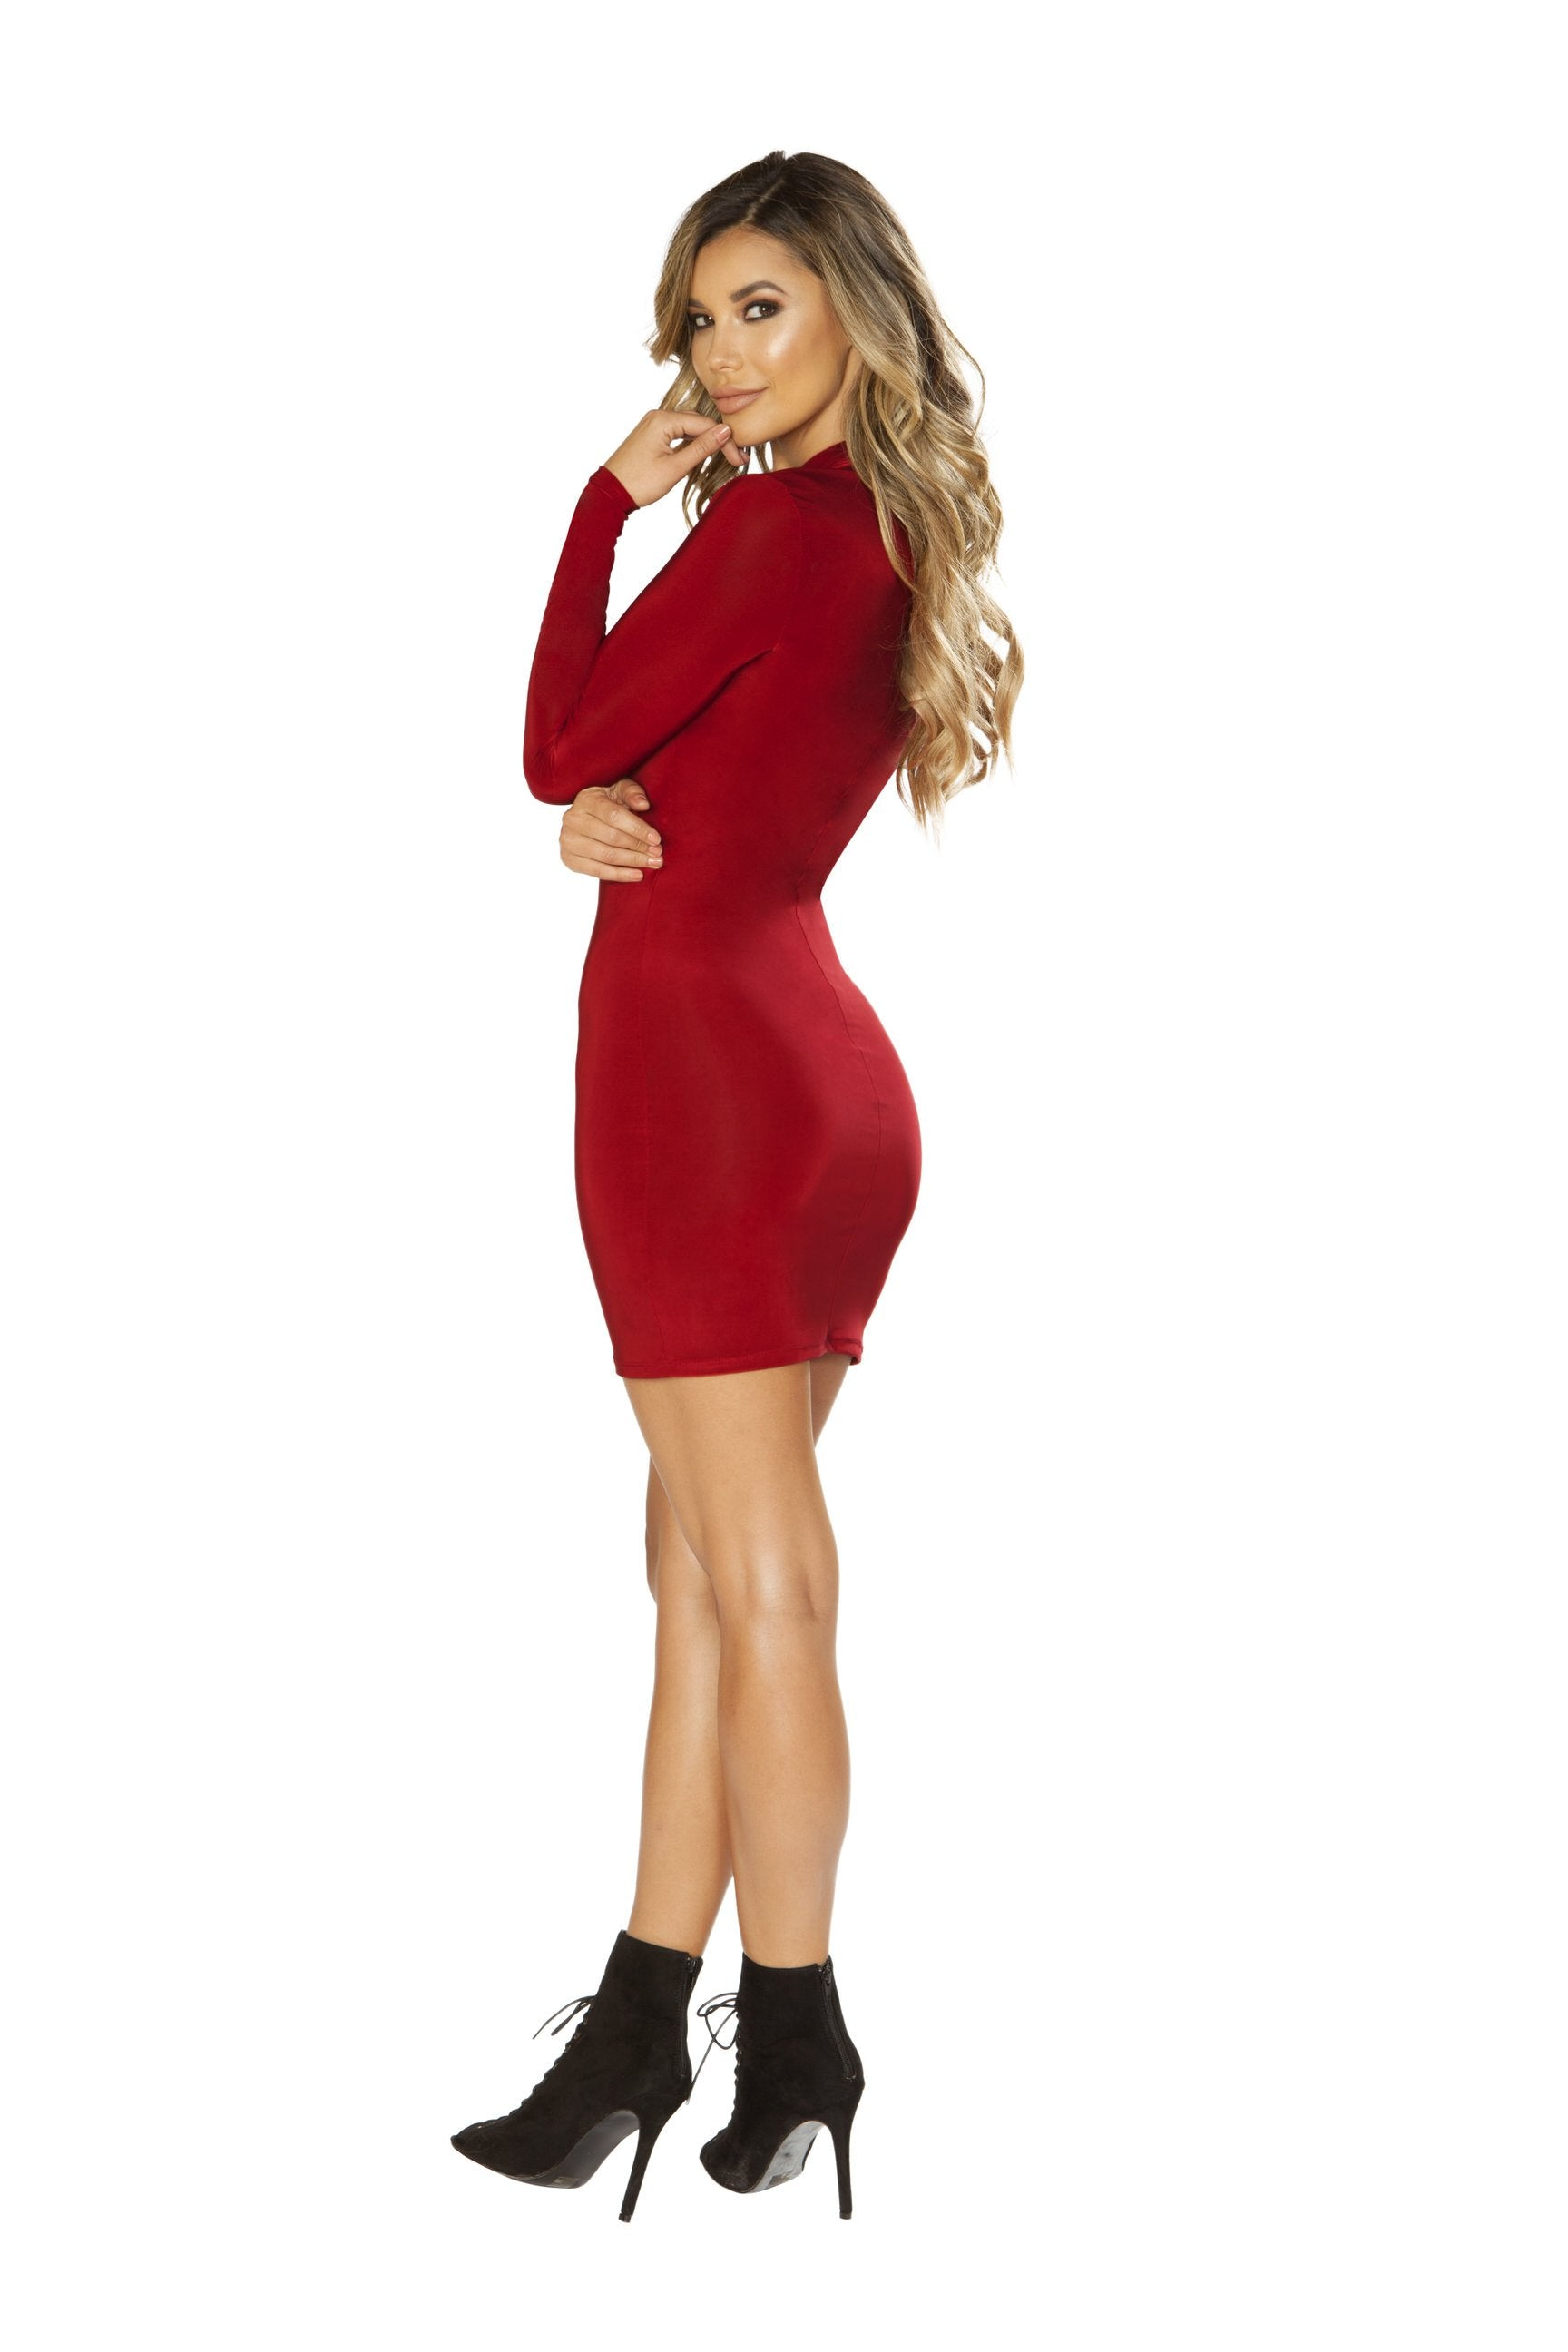 3642 - Long Sleeved Dress with Cutout Detail - PlaythingsMiami